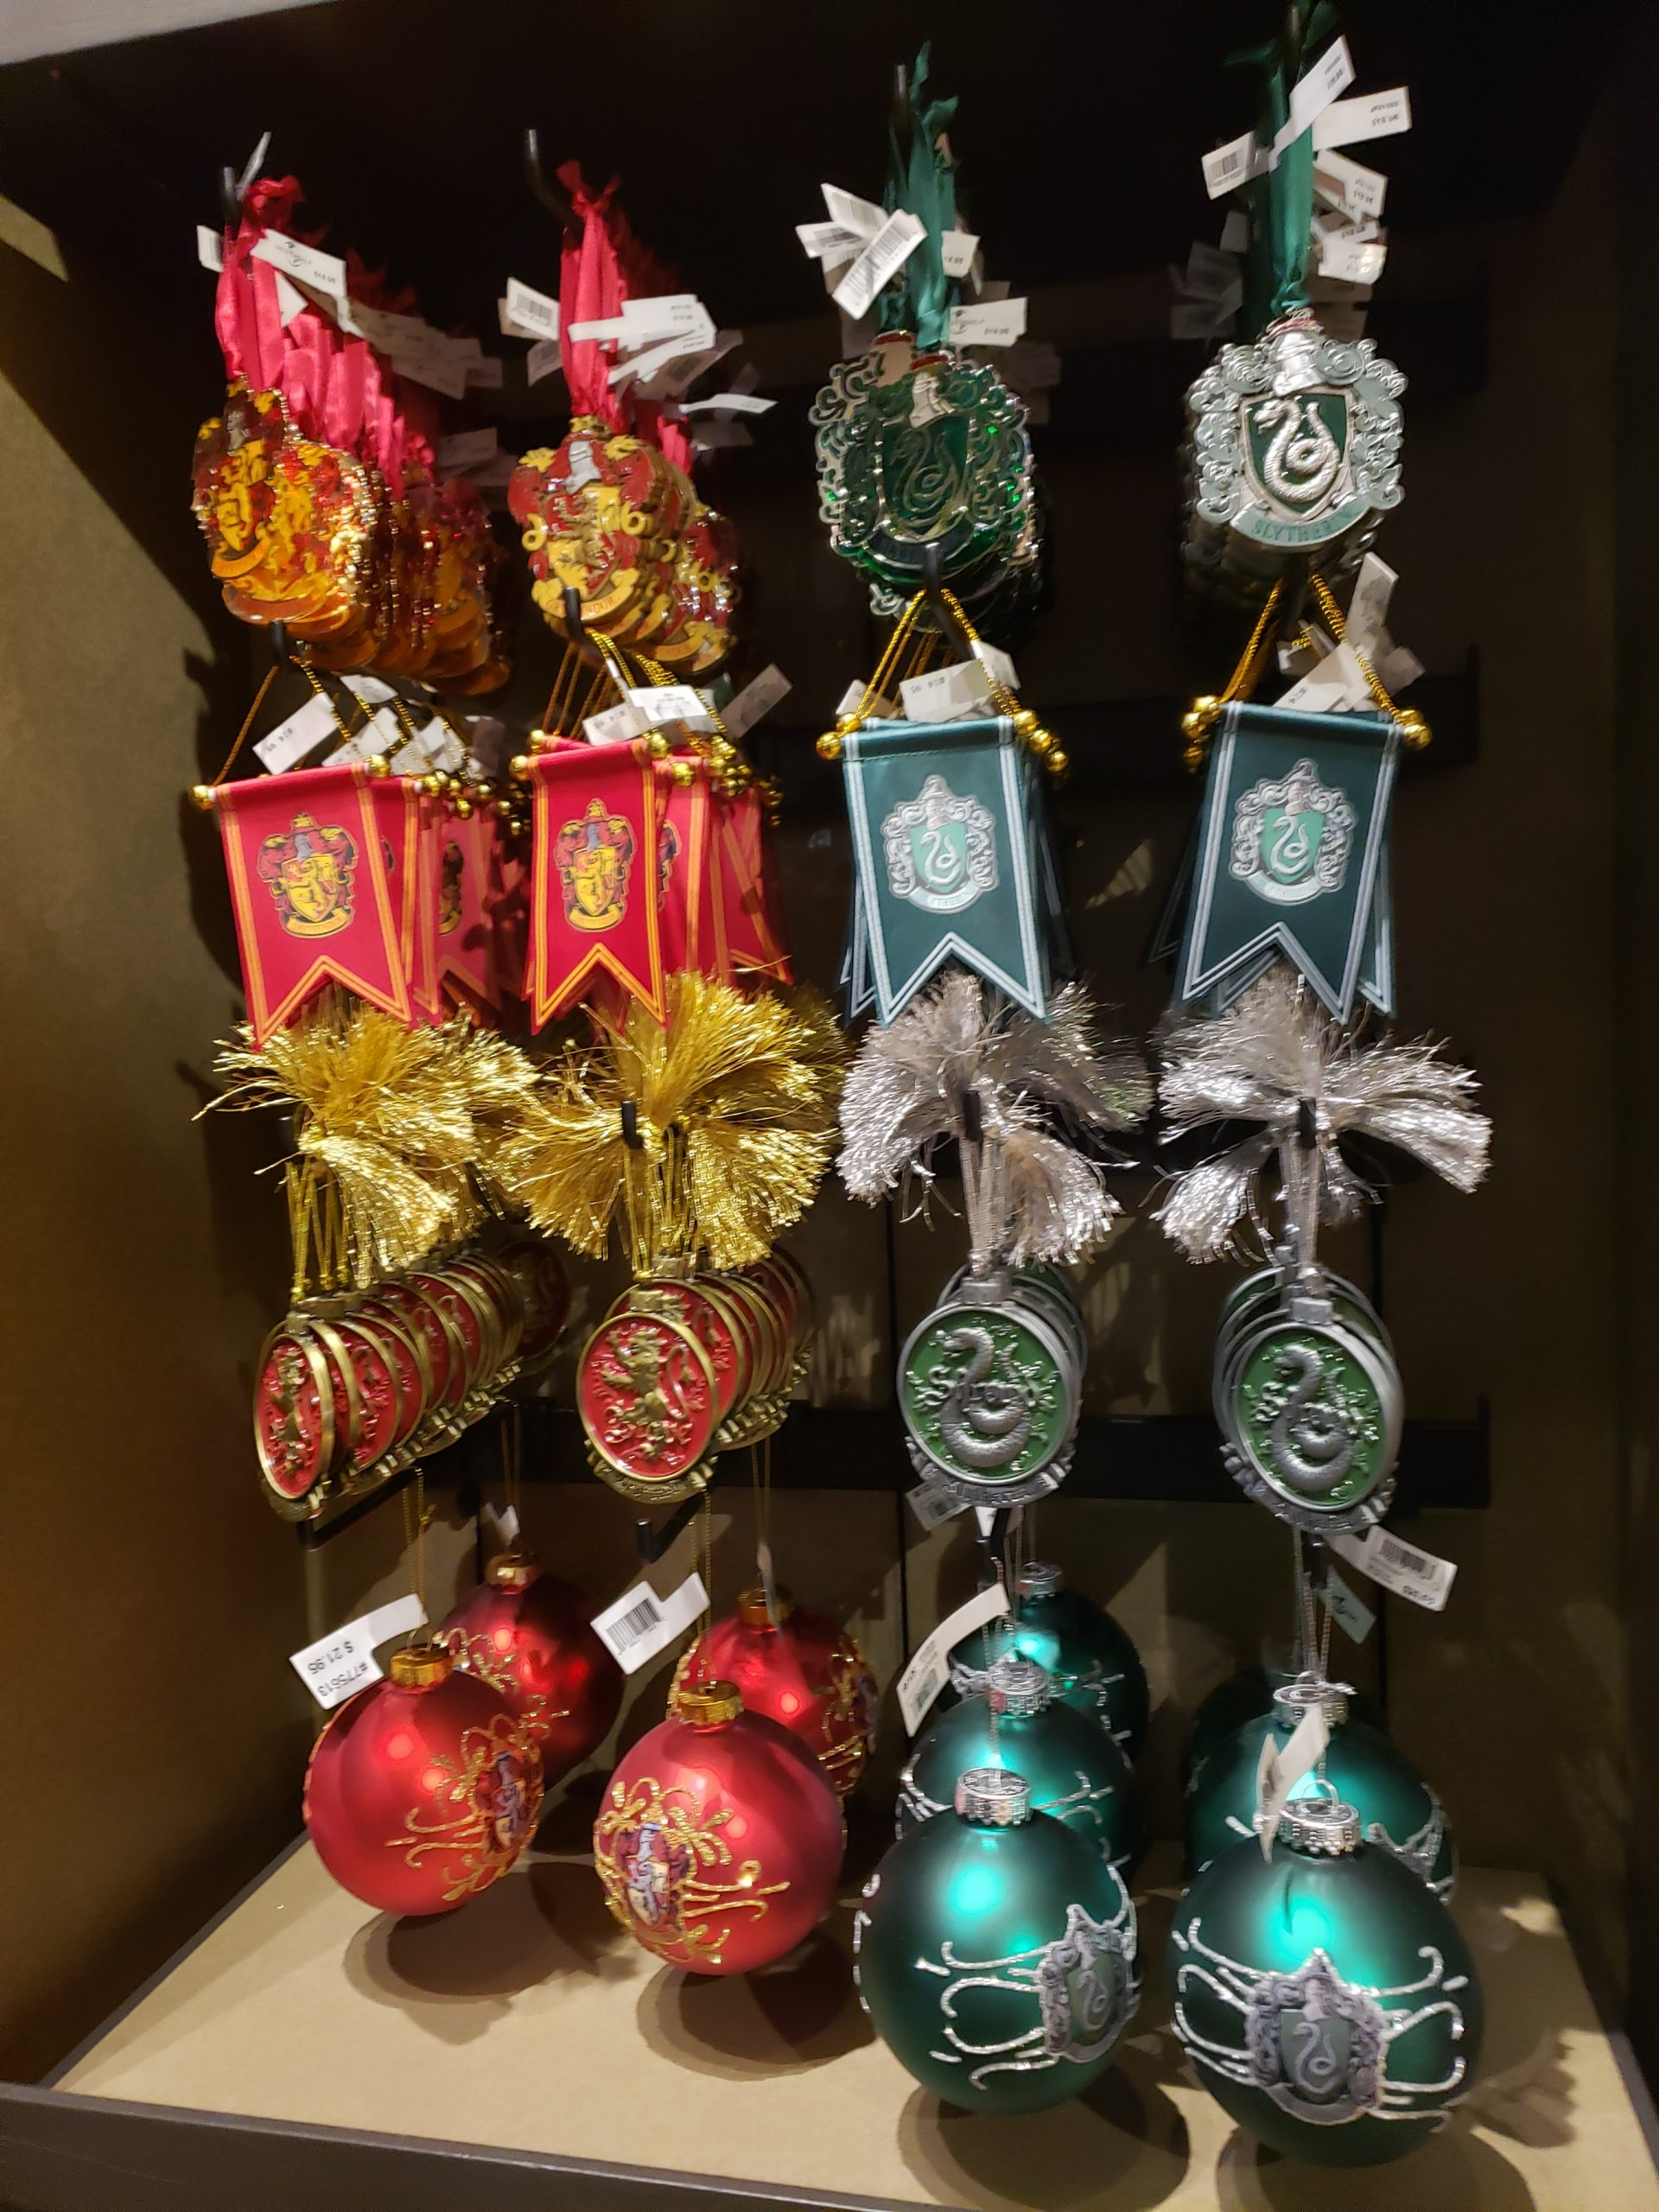 Gryffindor and Slytherin ornaments